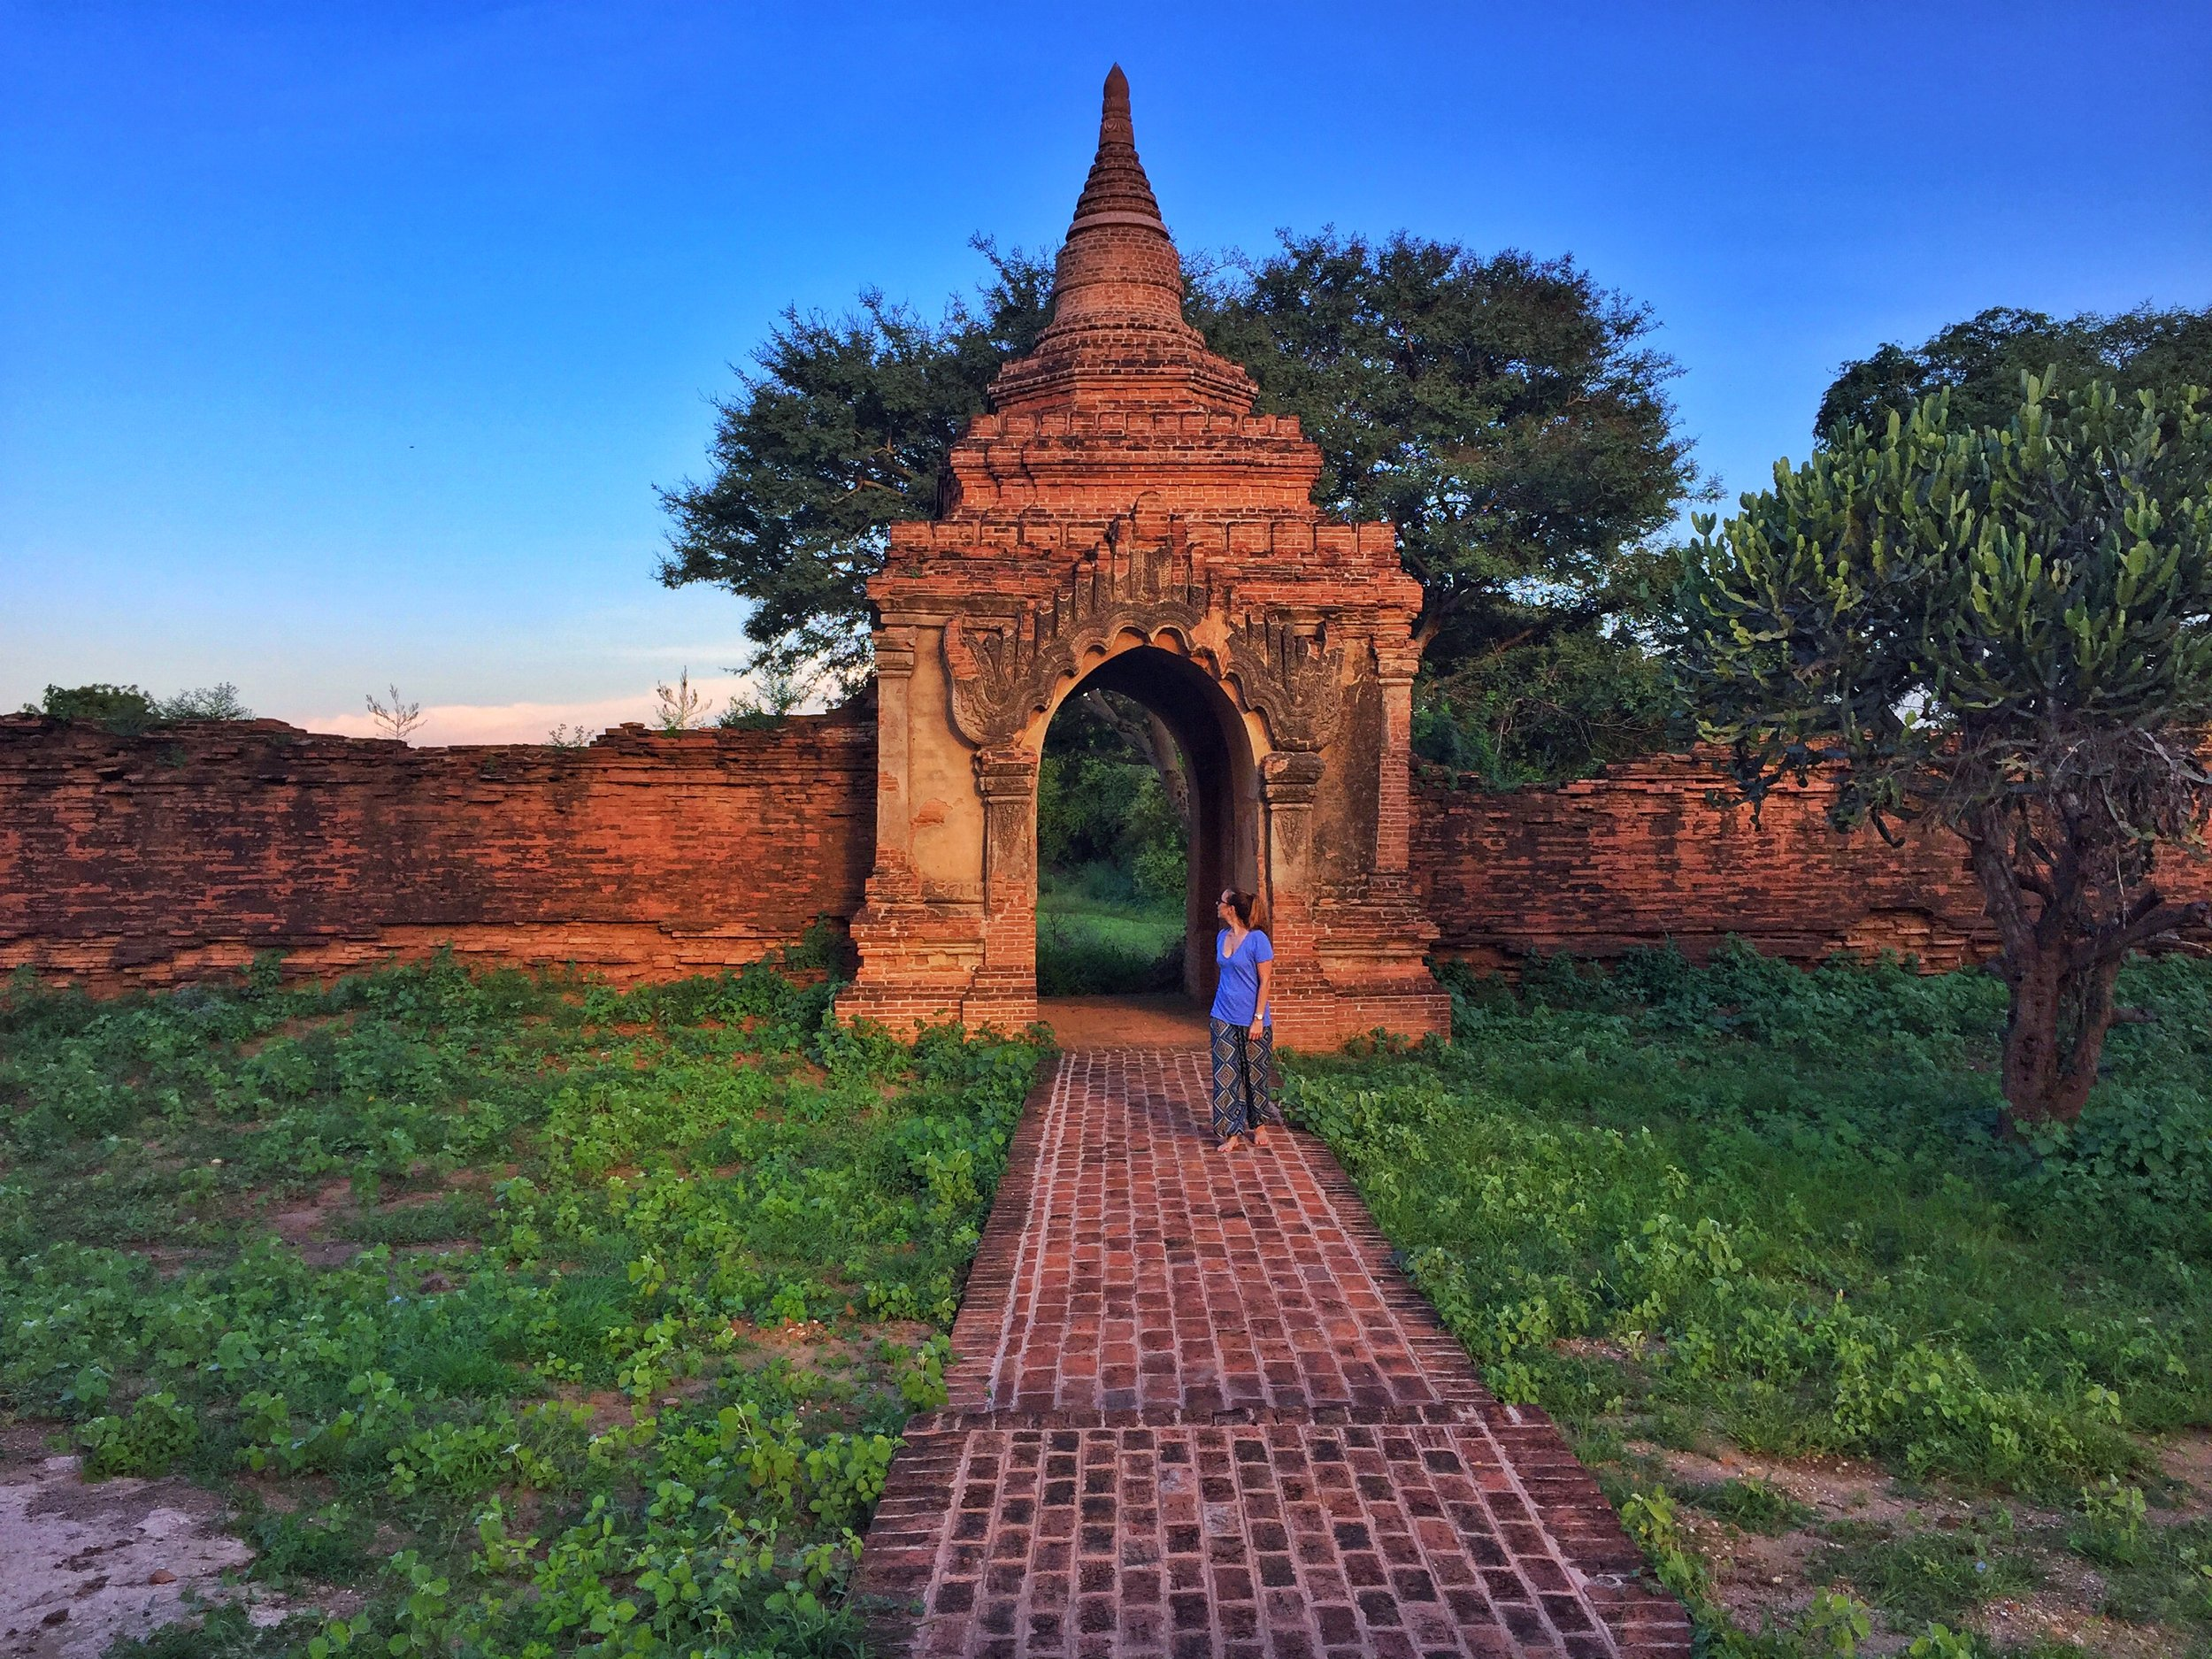 Wandering throughout the pagodas of Bagan wouldn't be as fun if my luggage was lost. Use these 10 tips and you shouldn't have a problem when you arrive!